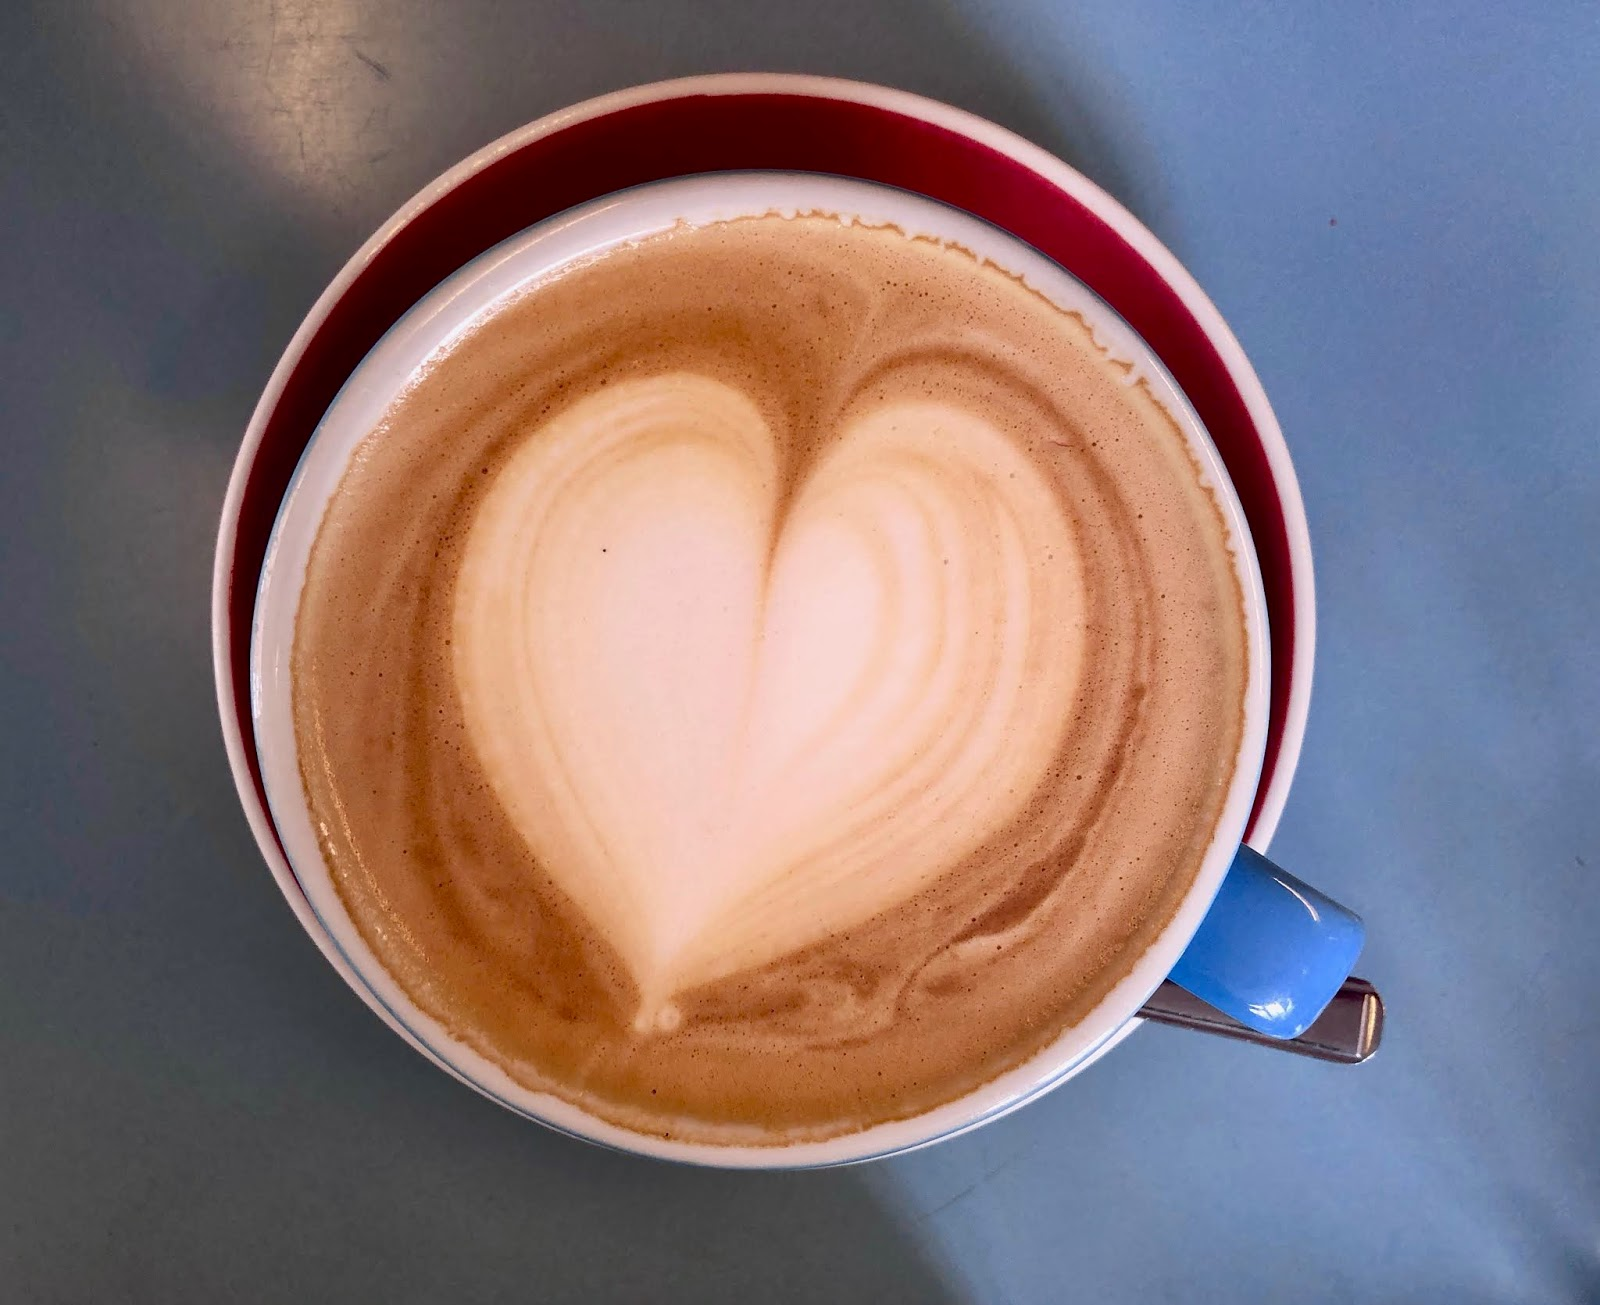 Coffee latte with heart pattern in the milk